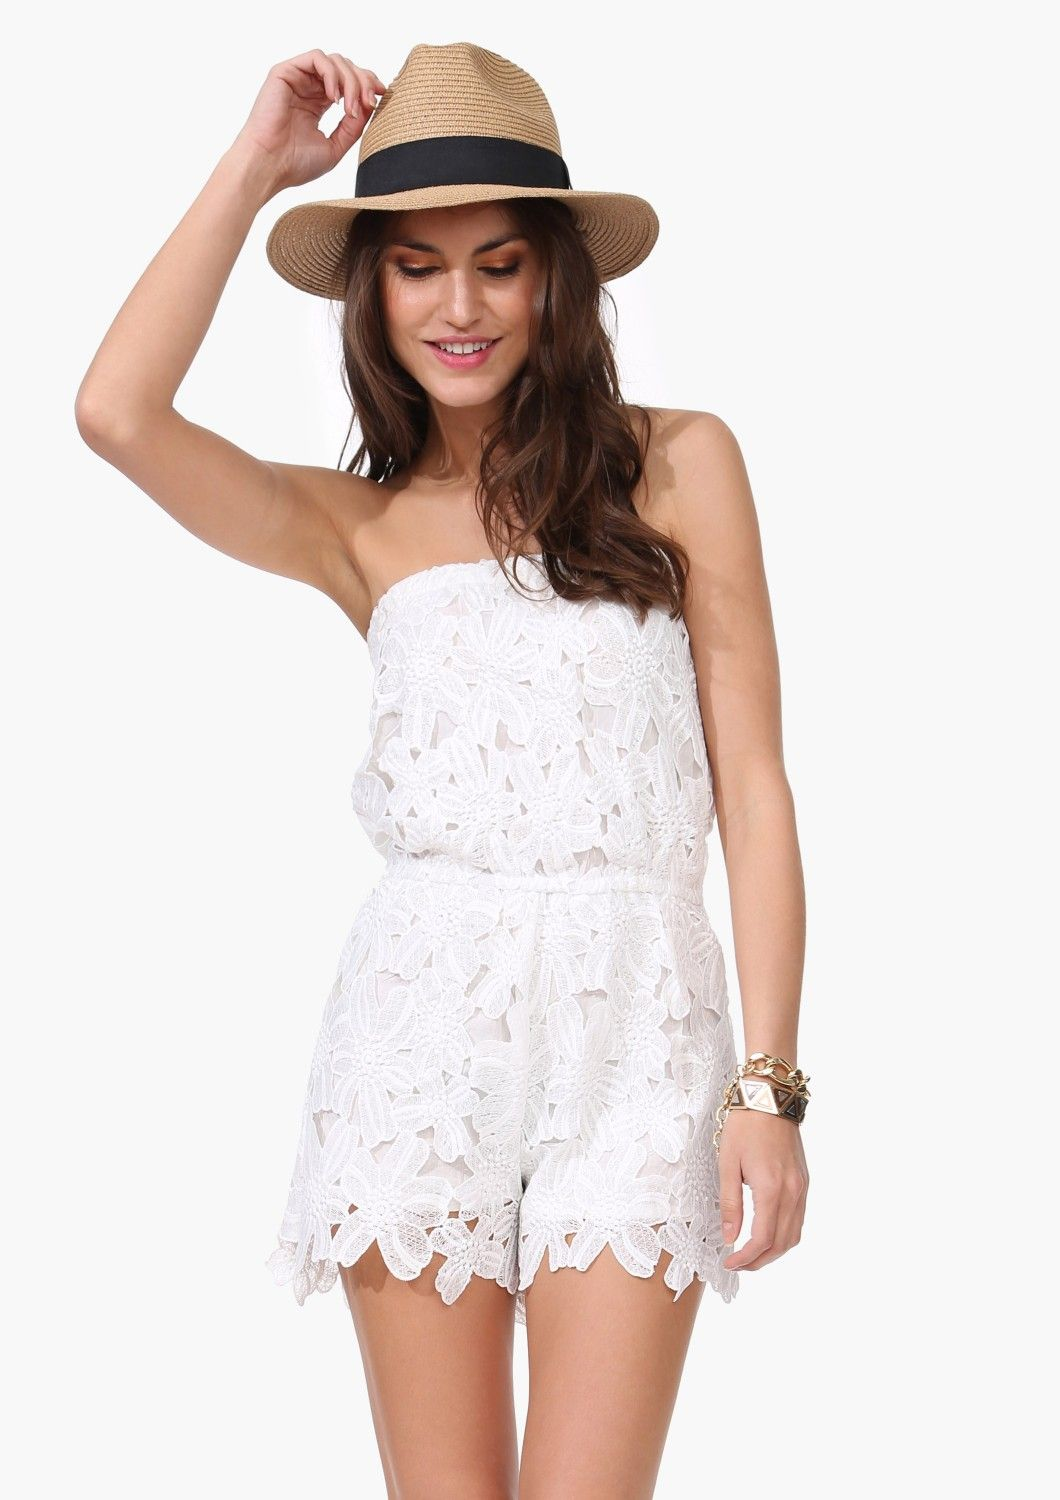 92c2e93a949 White lace romper from Necessary Clothing